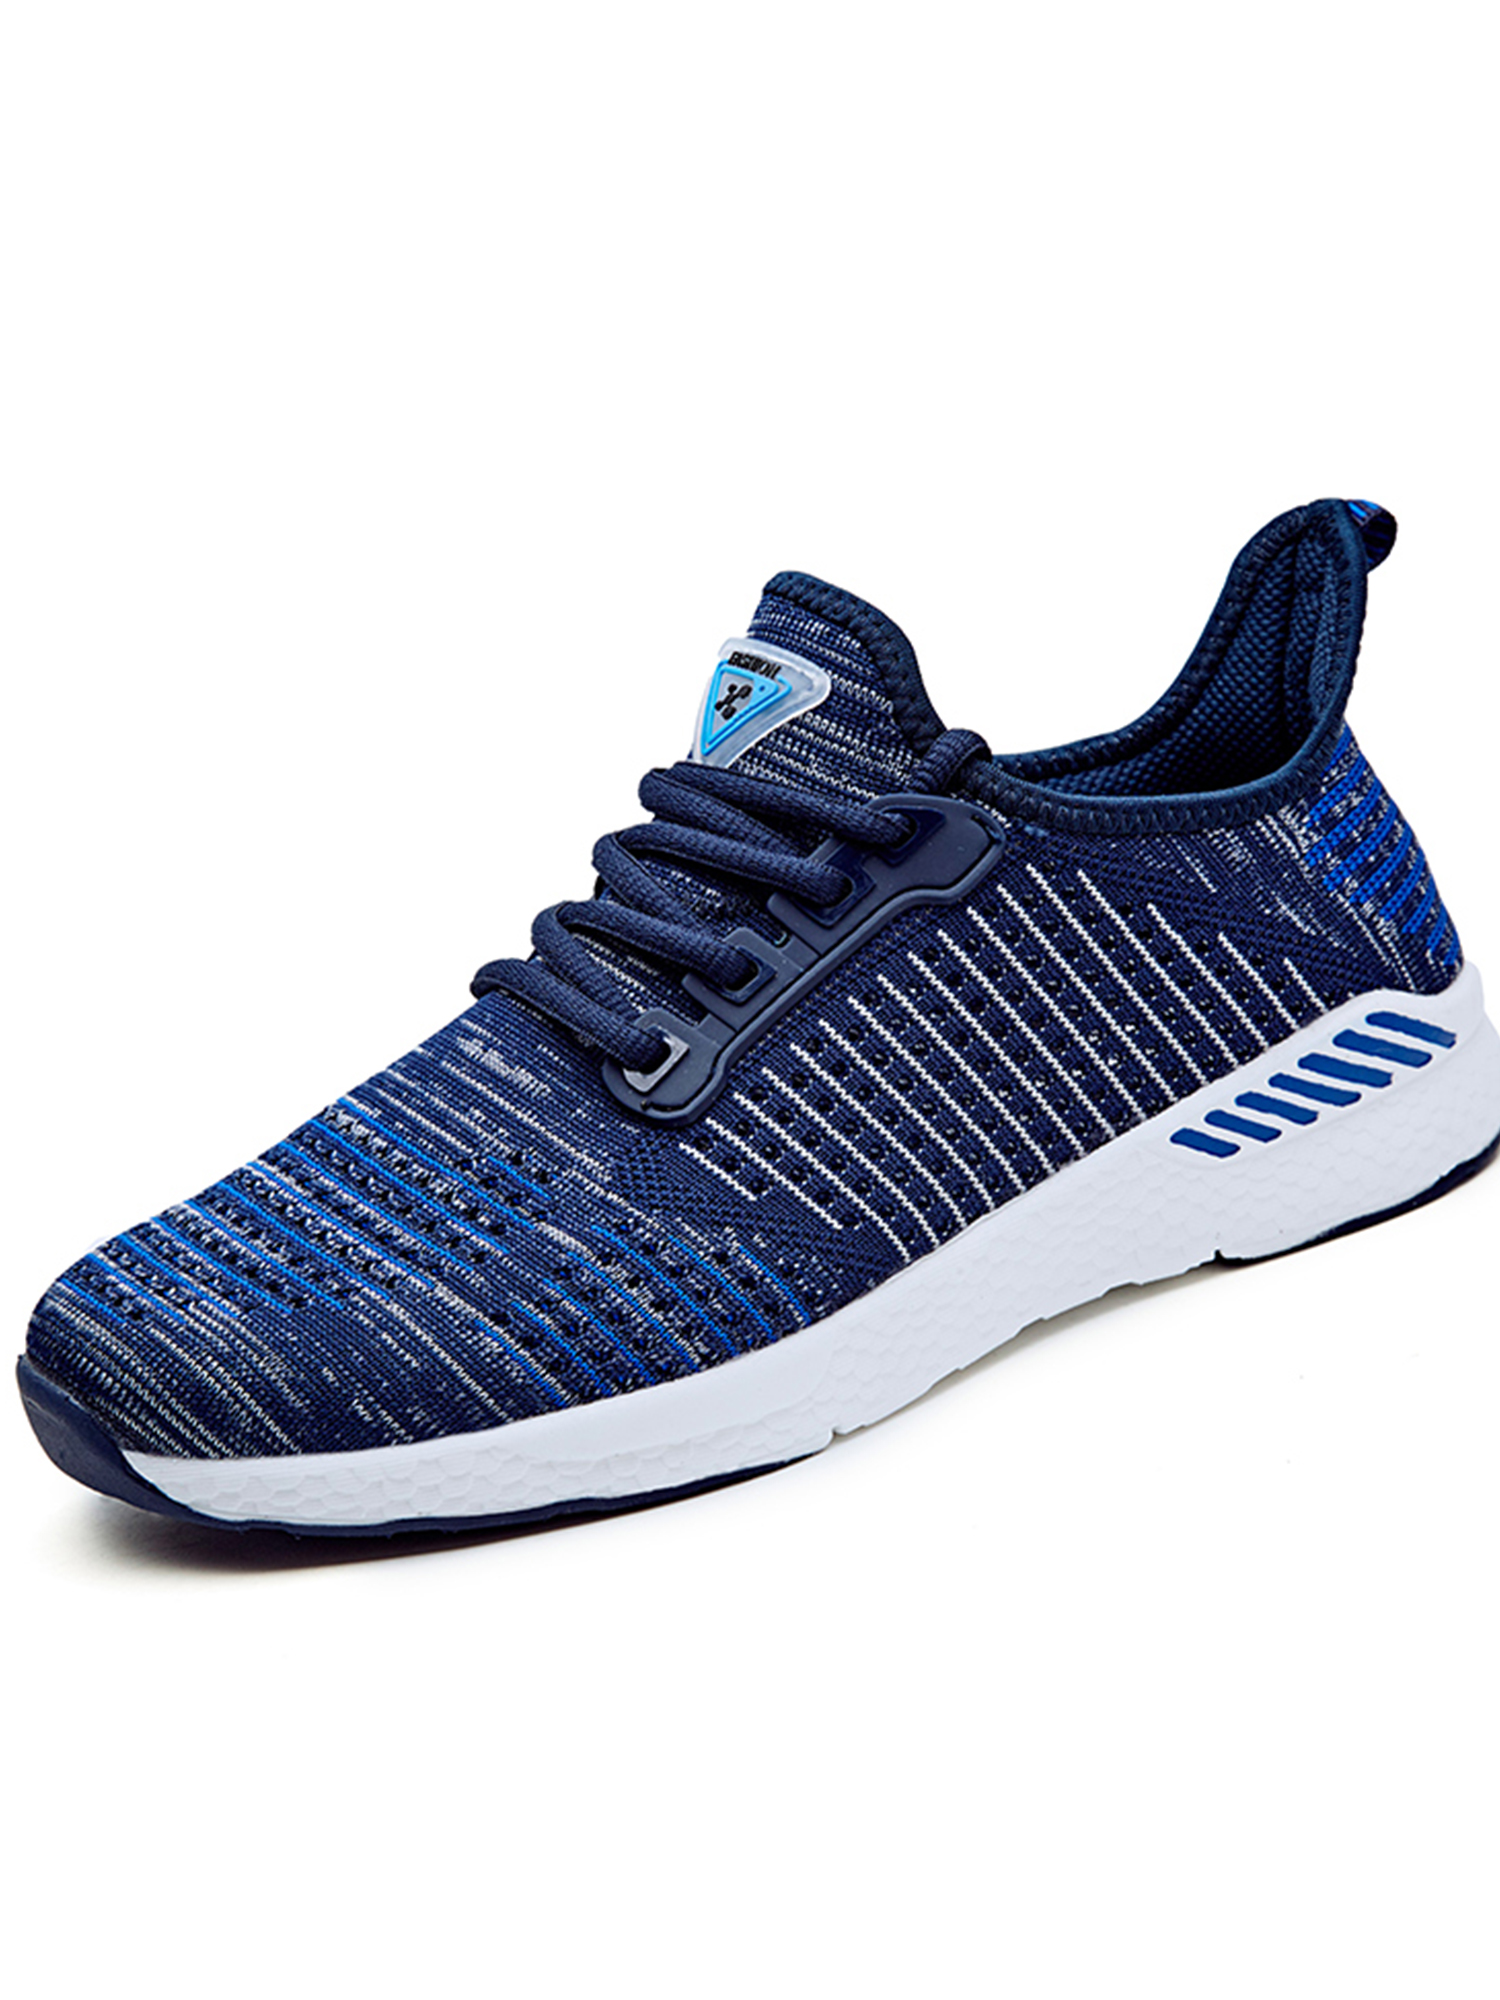 Mens Running Unicorn Shoes Fashion Breathable Sneakers Mesh Soft Sole Casual Athletic Lightweight